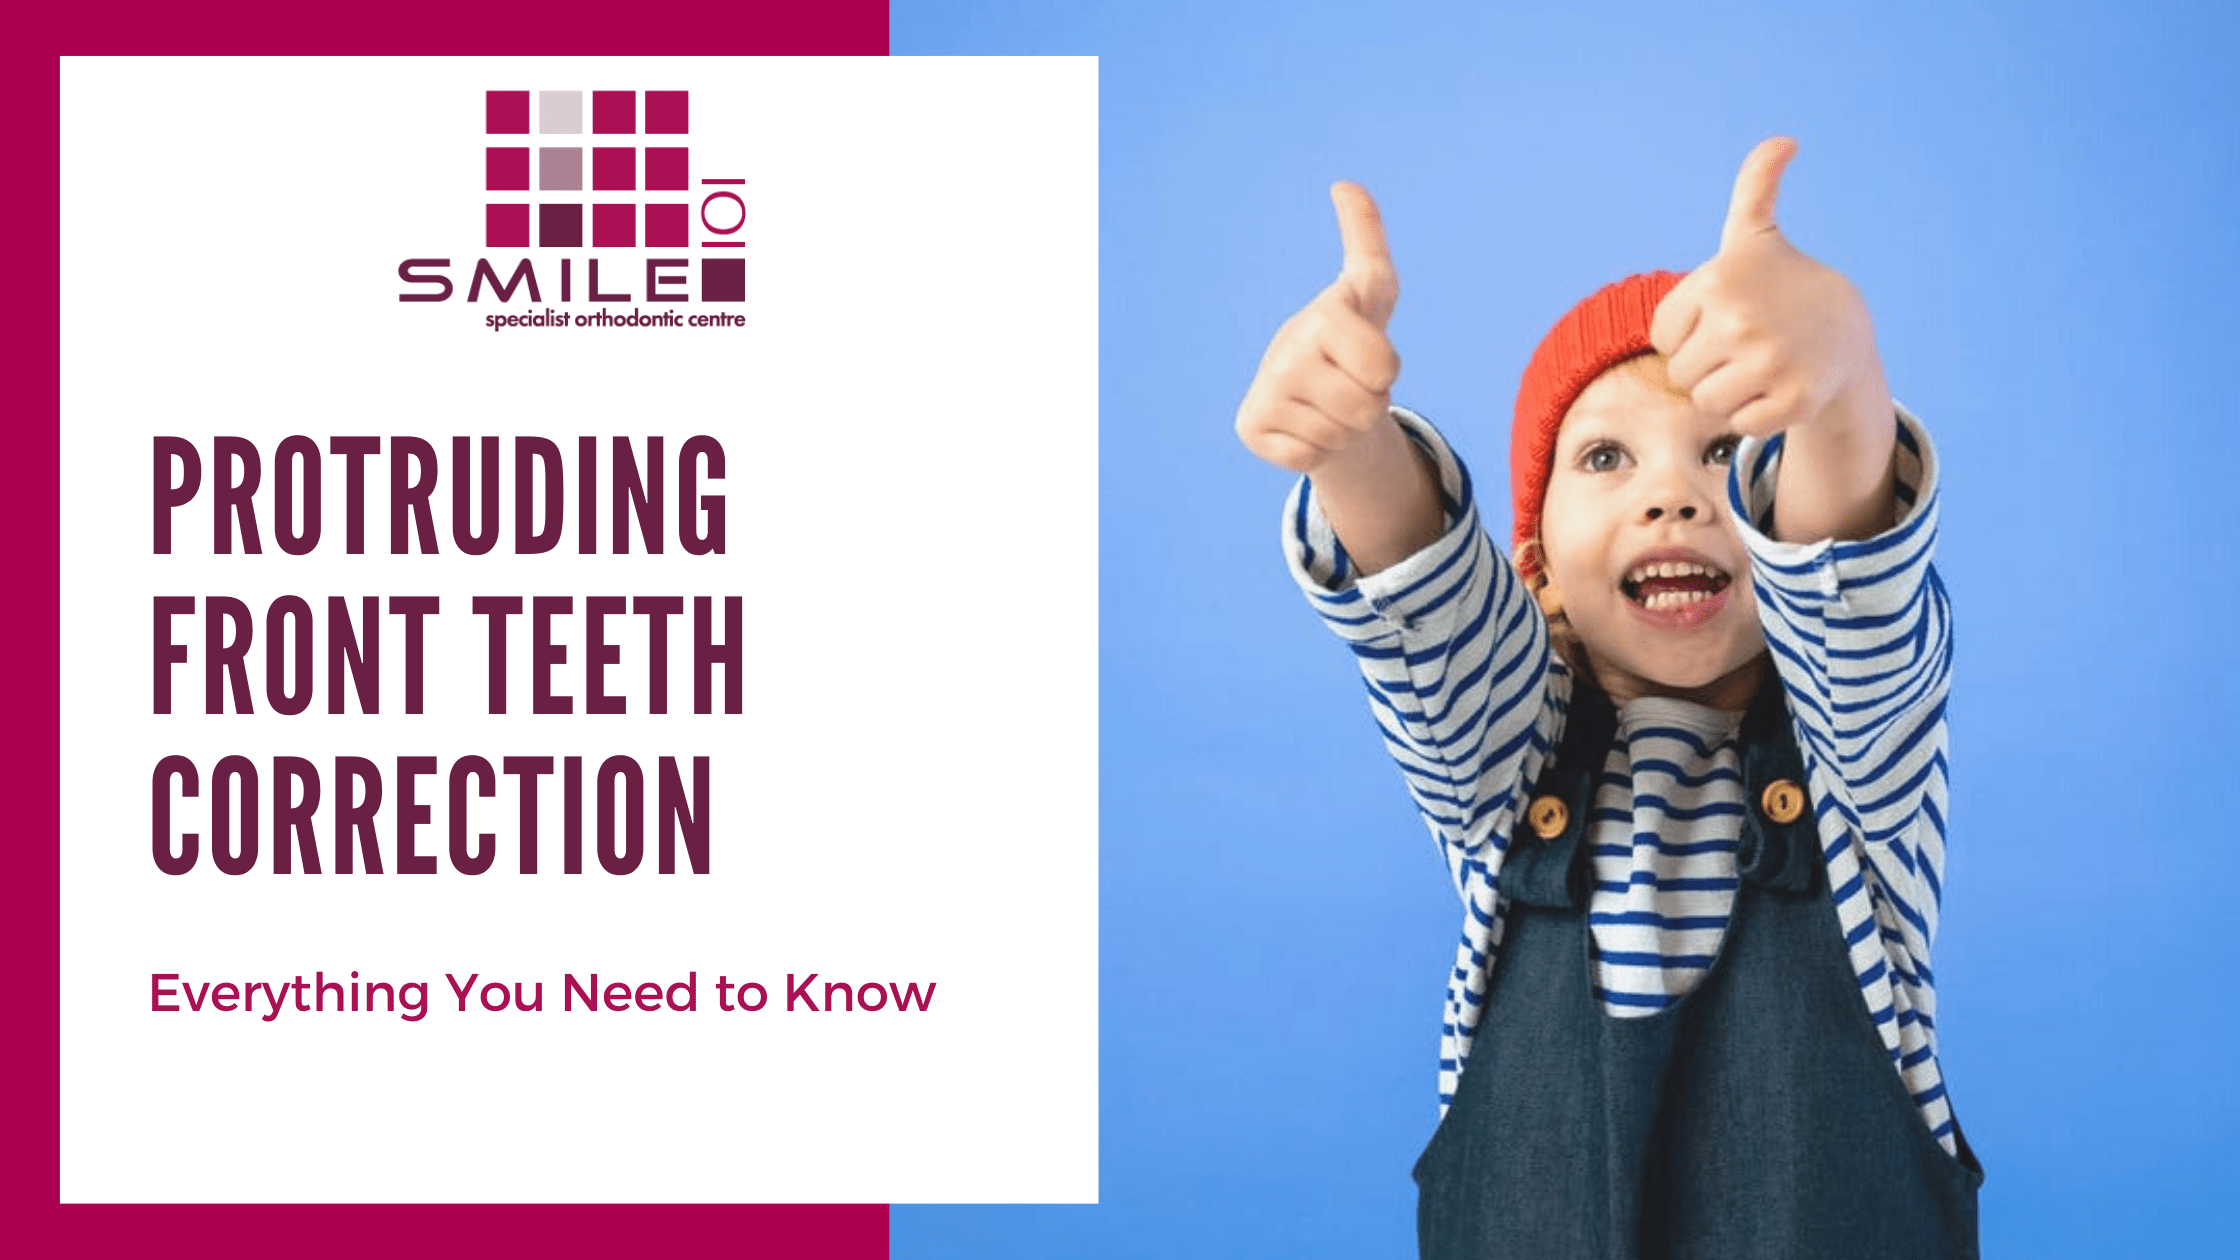 Protruding Front Teeth Correction: Everything You Need to Know